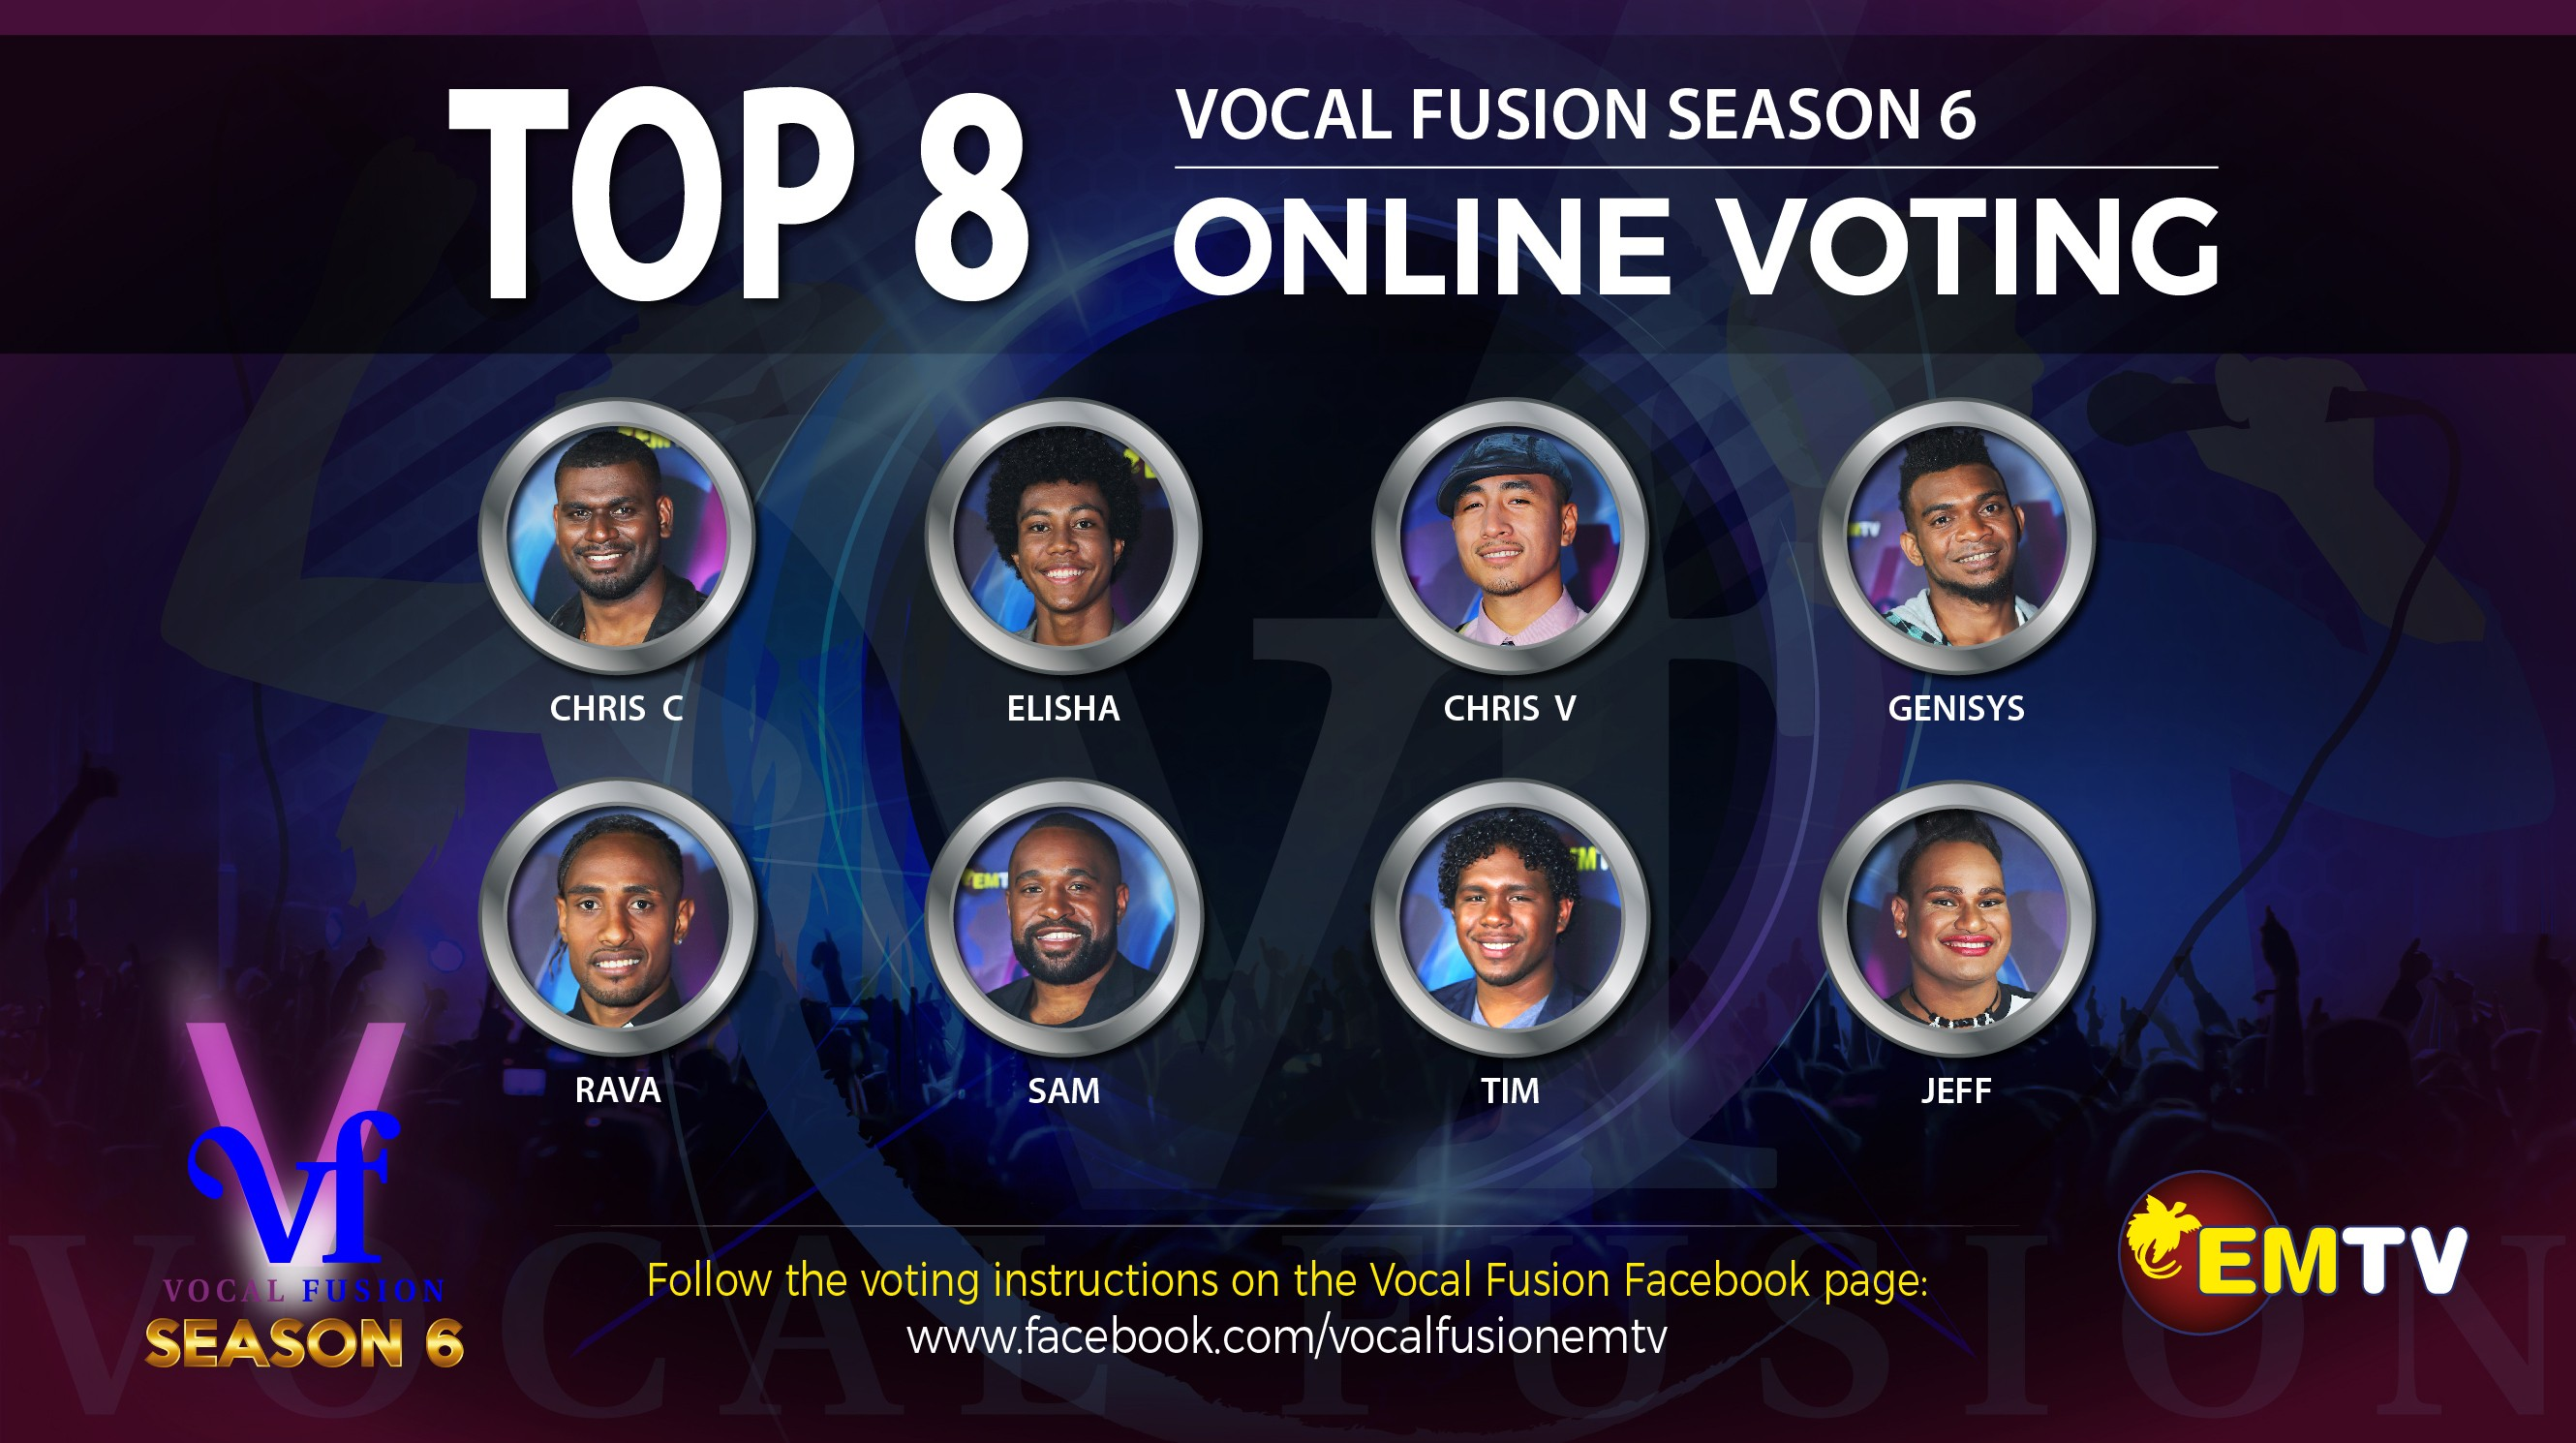 Vocal Fusion Season 6.